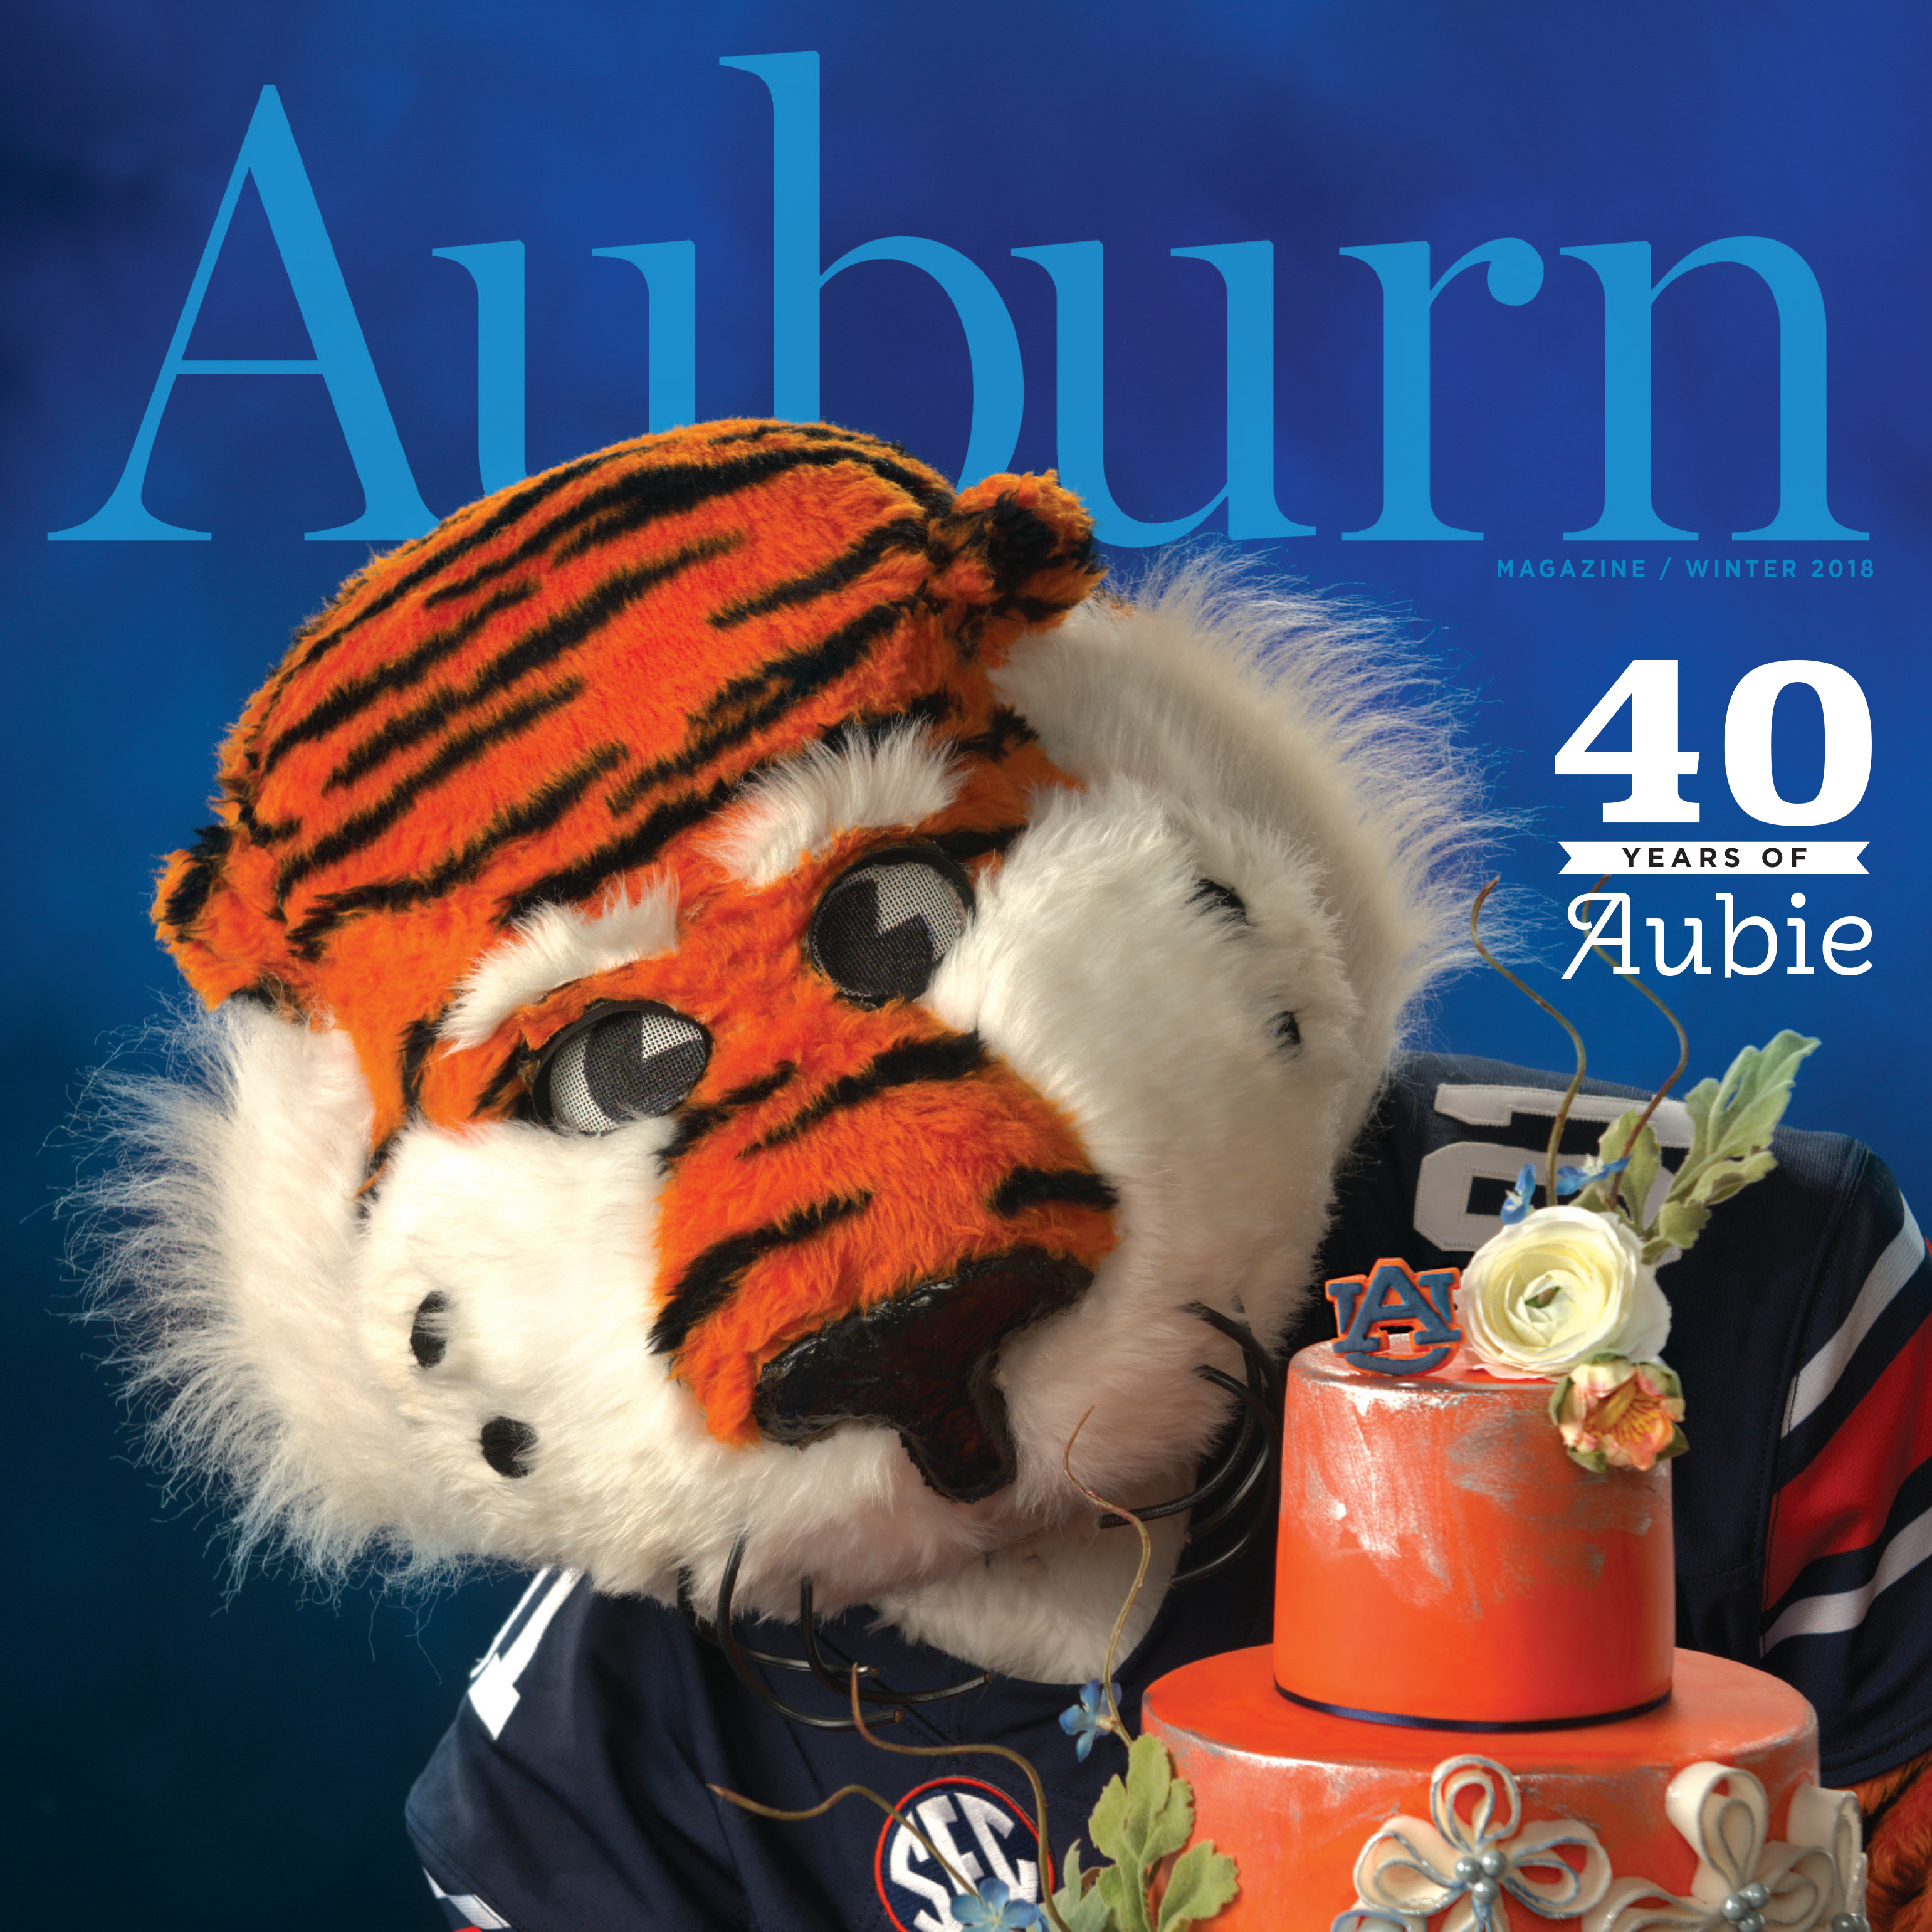 Auburn Magazine Winter 2018 40 Years of Aubie; Aubie holding a birthday cake